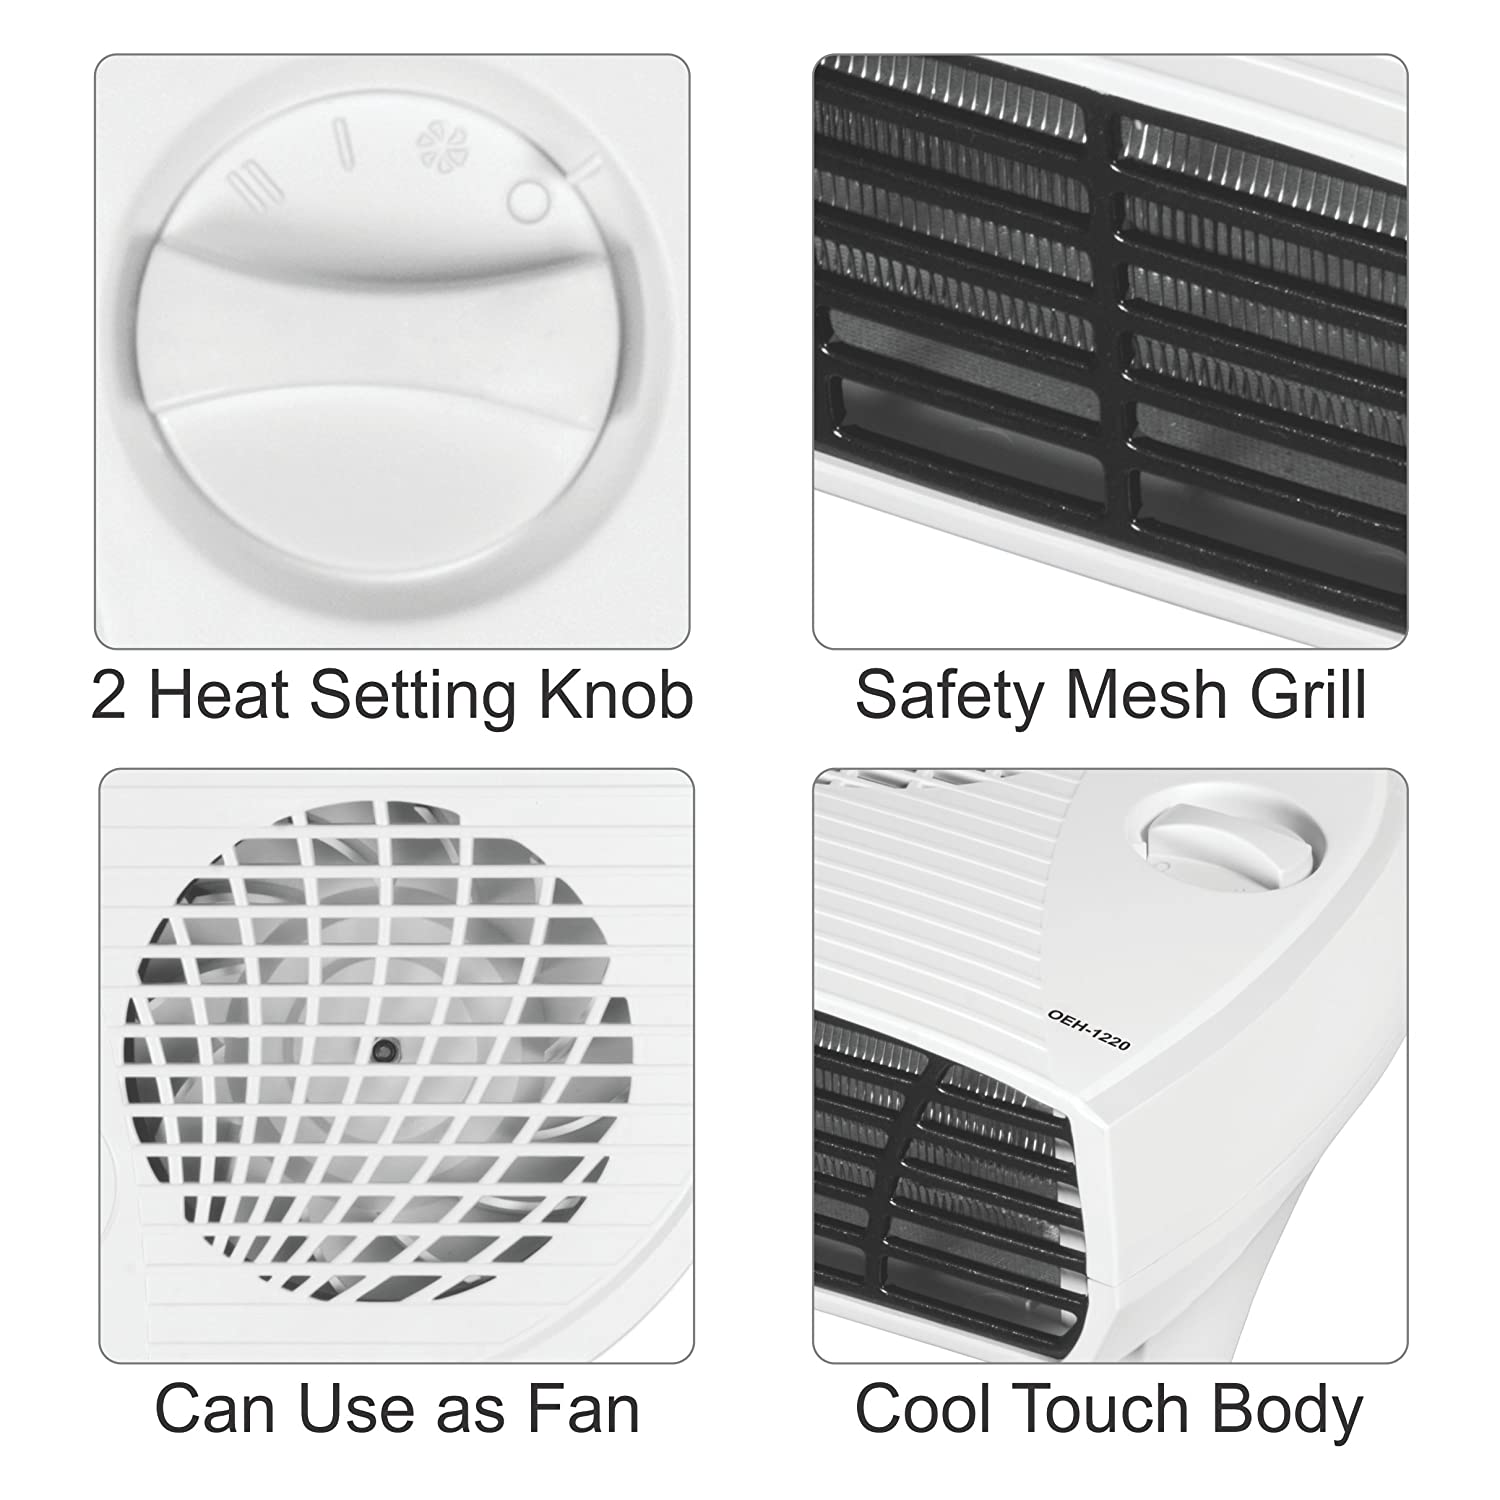 Orpat Oeh 1220 2000 Watt Fan Heater White Home Kitchen How To Install A Or Residential Wiring Diy